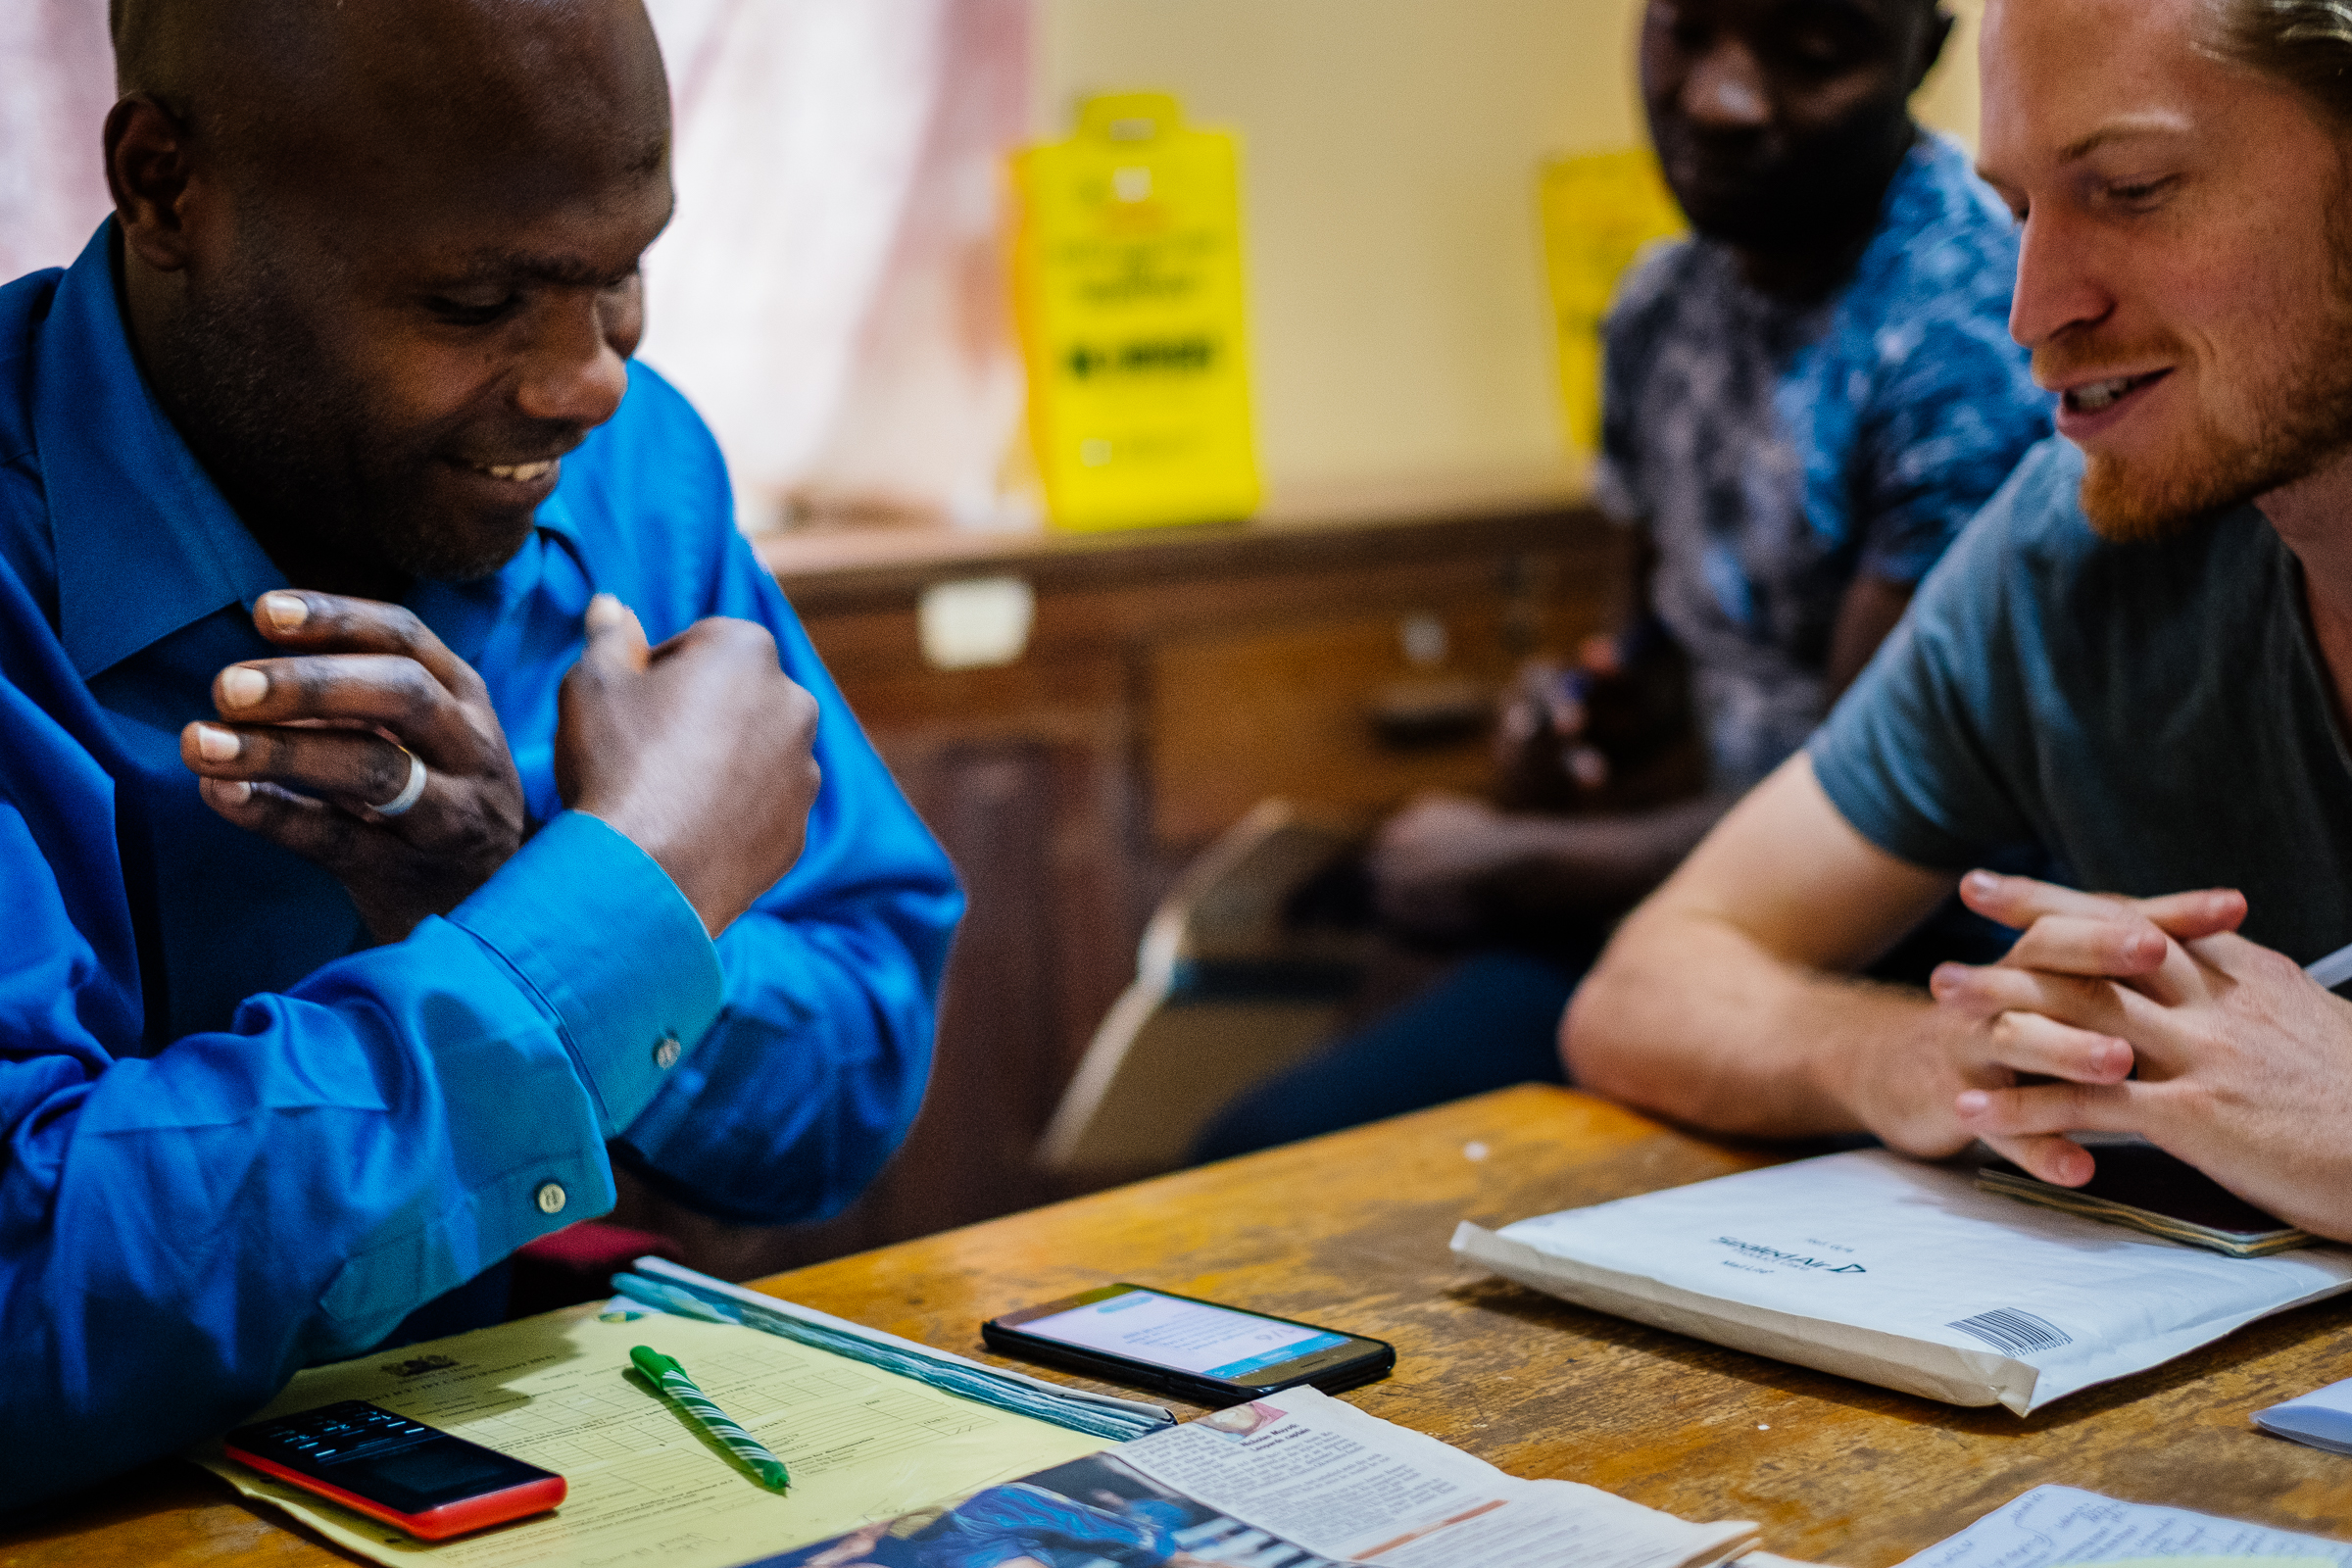 We accompanied Erick doing his rounds in the informal settlement of Kibura, Nairobi, before our co-creation session. Check out the learnings here